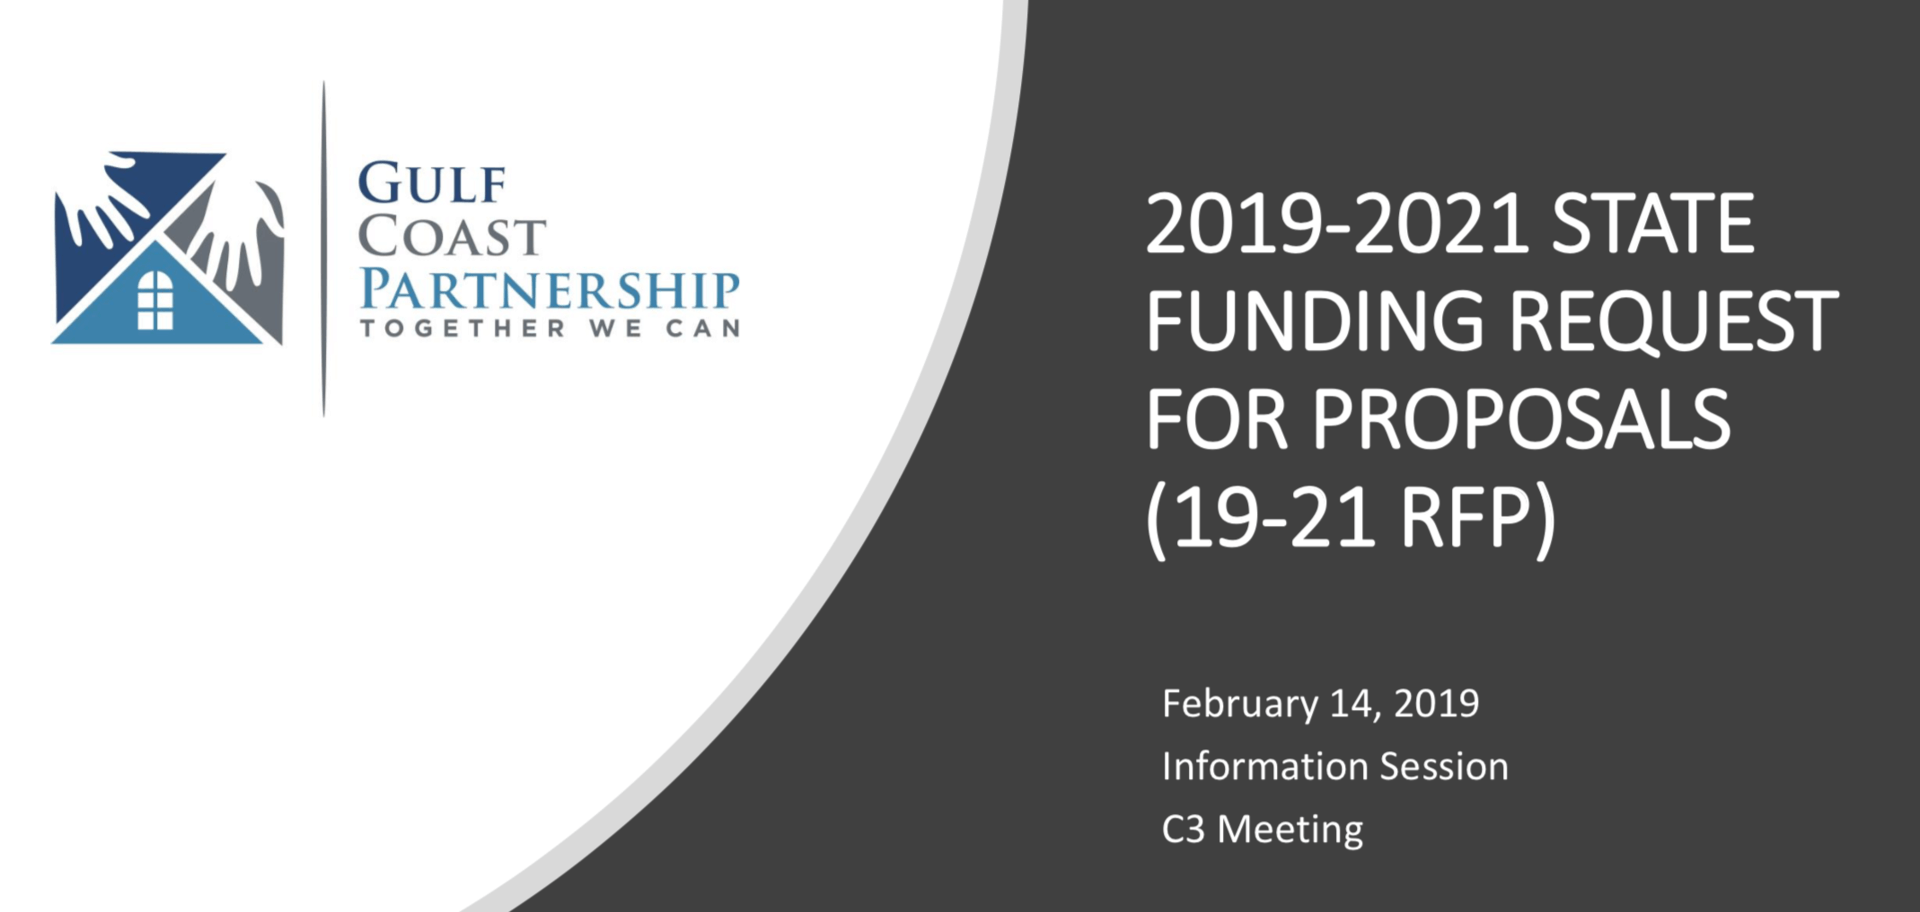 2019-2021 STATE FUNDING REQUEST FOR PROPOSALS (19-21 RFP) - Gulf